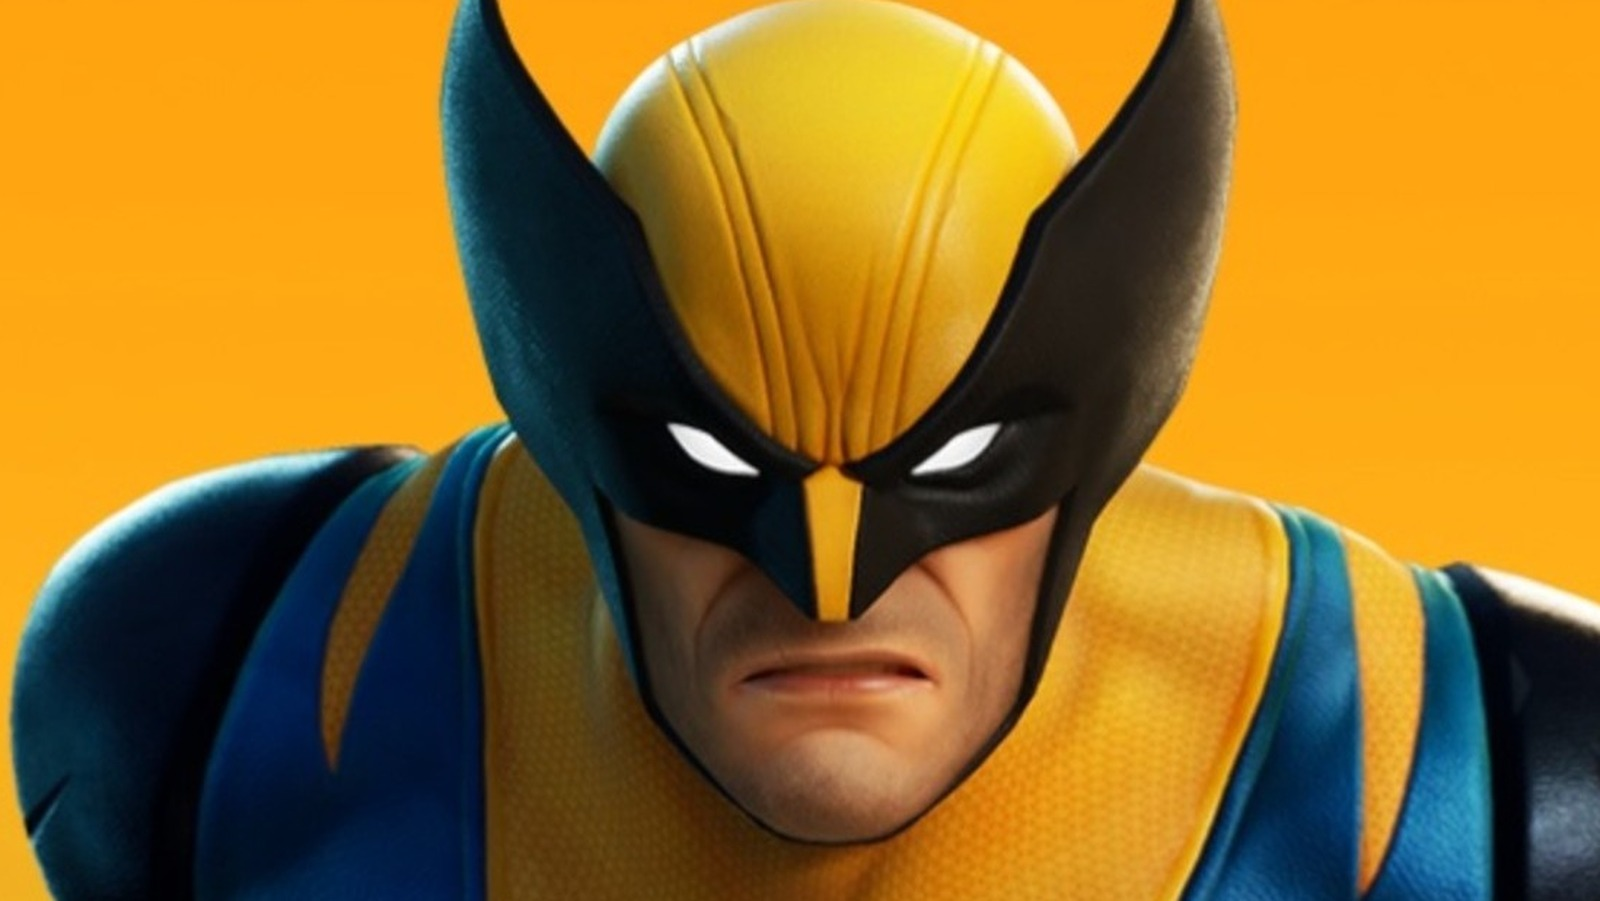 Marvel's Wolverine Release Date, Trailer And Gameplay - What We Know So Far